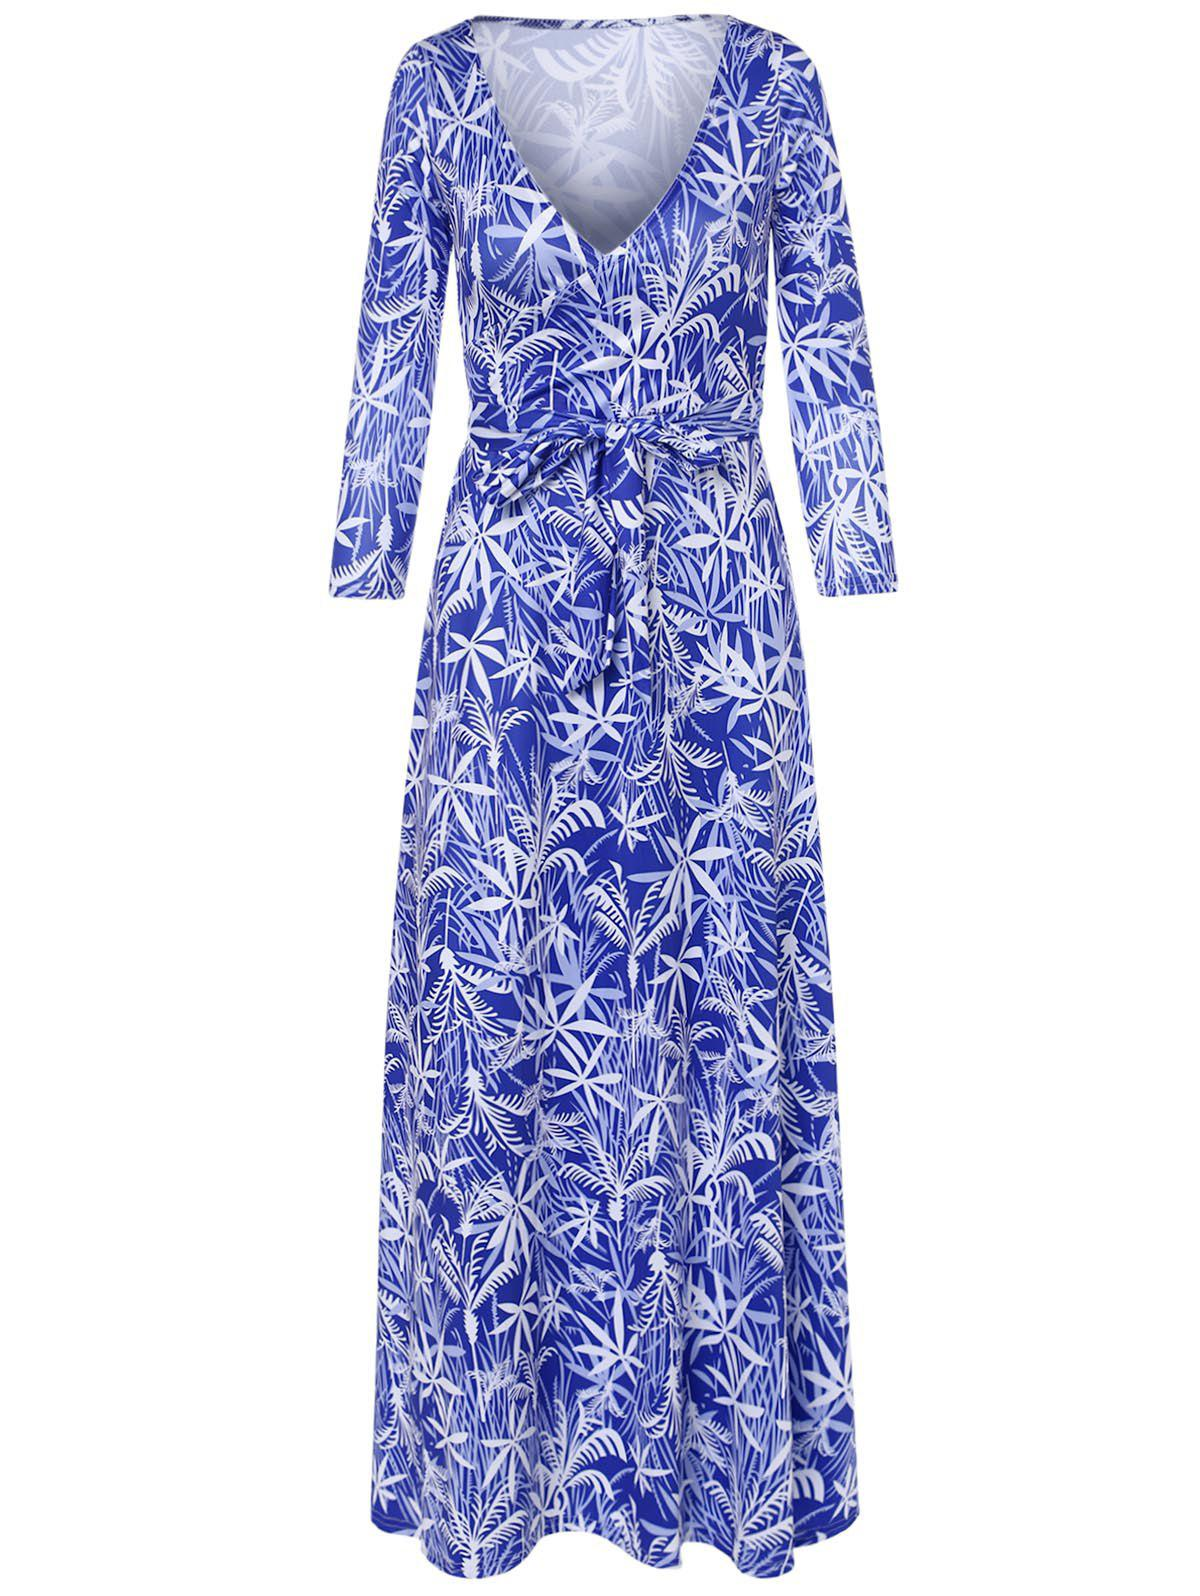 Leaf Print Plunging Neck Dress - SAPPHIRE BLUE L